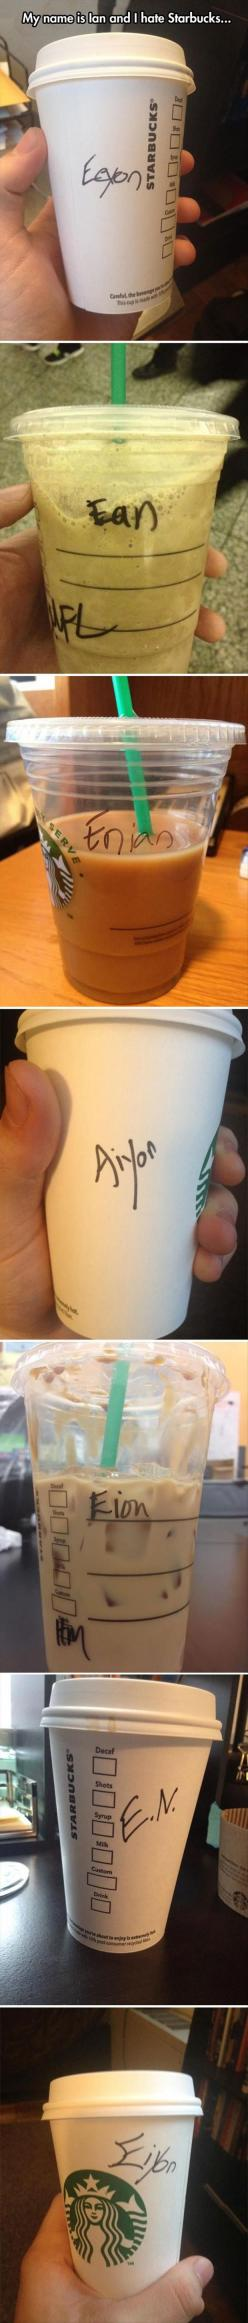 hahahahaha.: Giggle, Hate Starbucks, Funny Pics, Poor Ian, Funny Pictures, Funny Quotes, Poor Guy